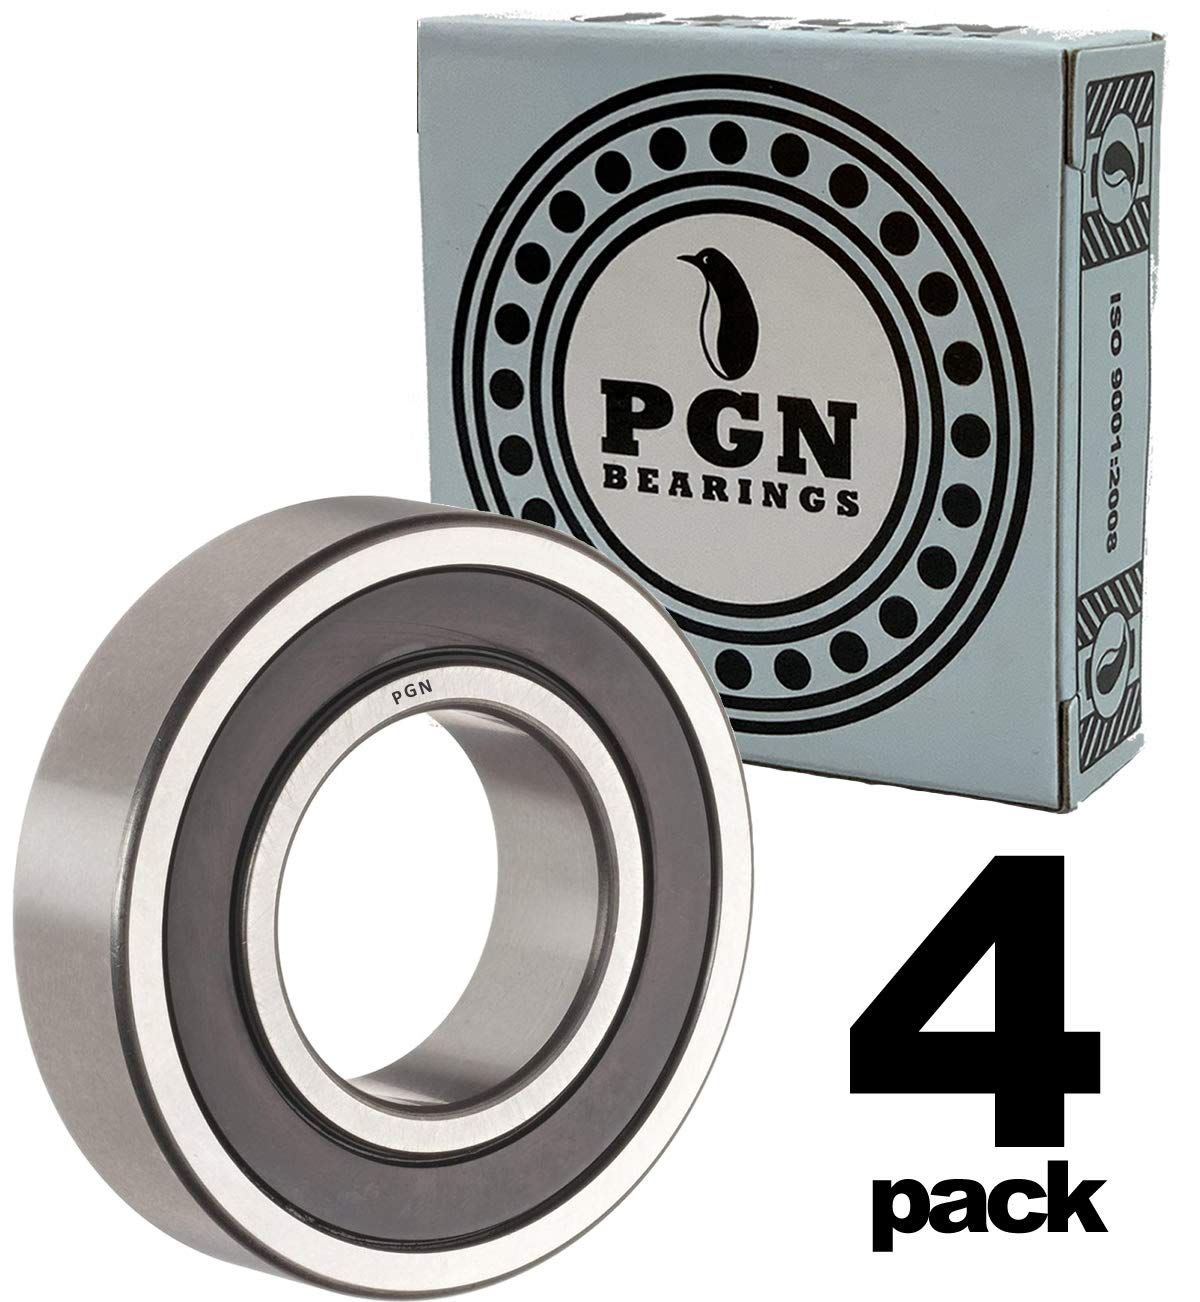 PGN 6203-2RS Sealed Ball Bearing - 17x40x12 - Lubricated - Chrome Steel (4 PCS)